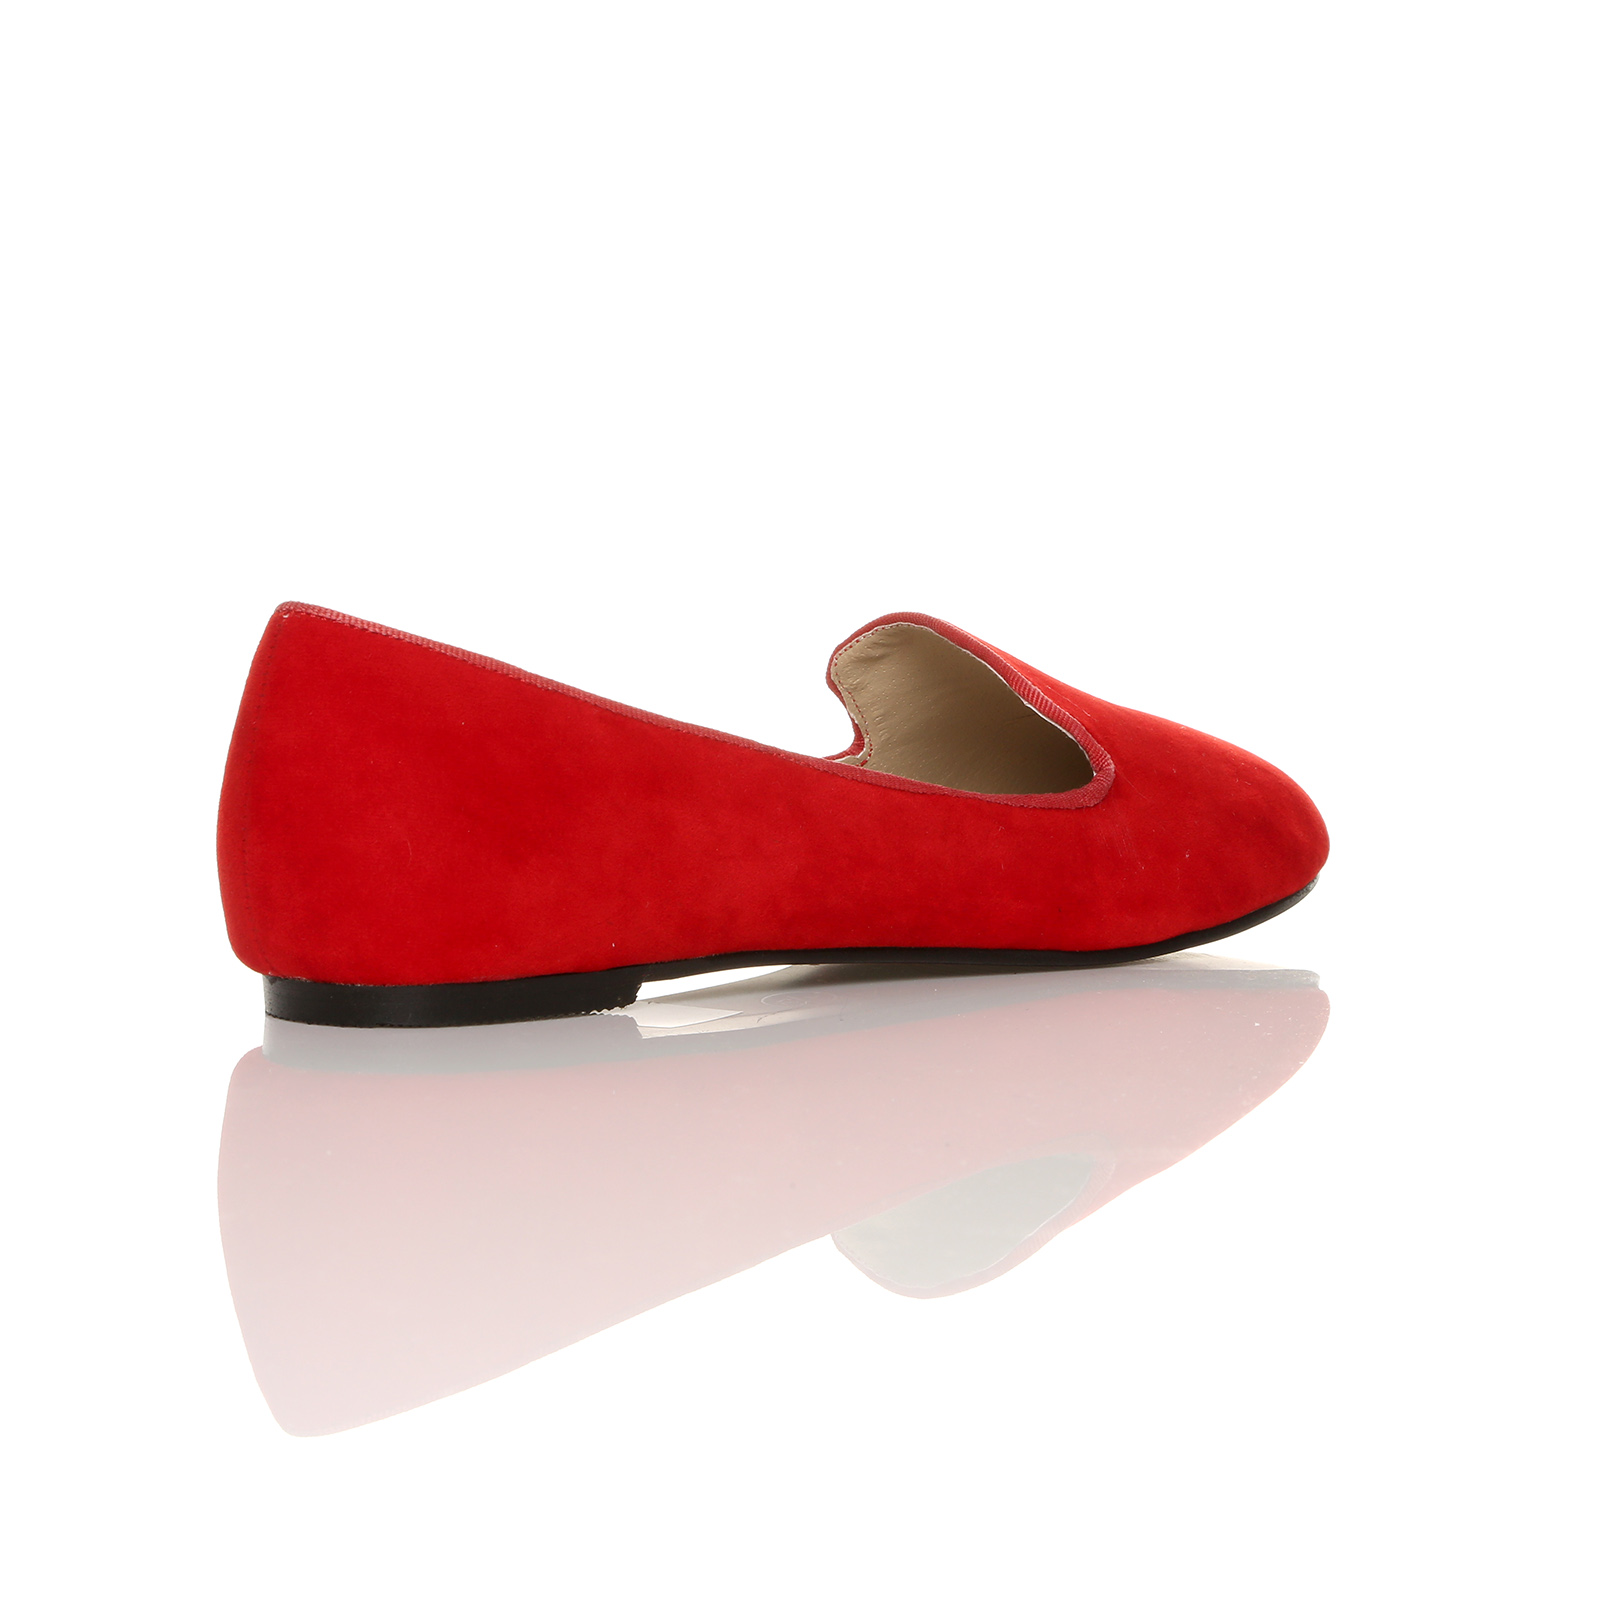 NEW SLIP ON CASUAL FLAT SHOES LADIES GIRLS FAUX SUEDE BALLERINAS SIZE 3 - 8